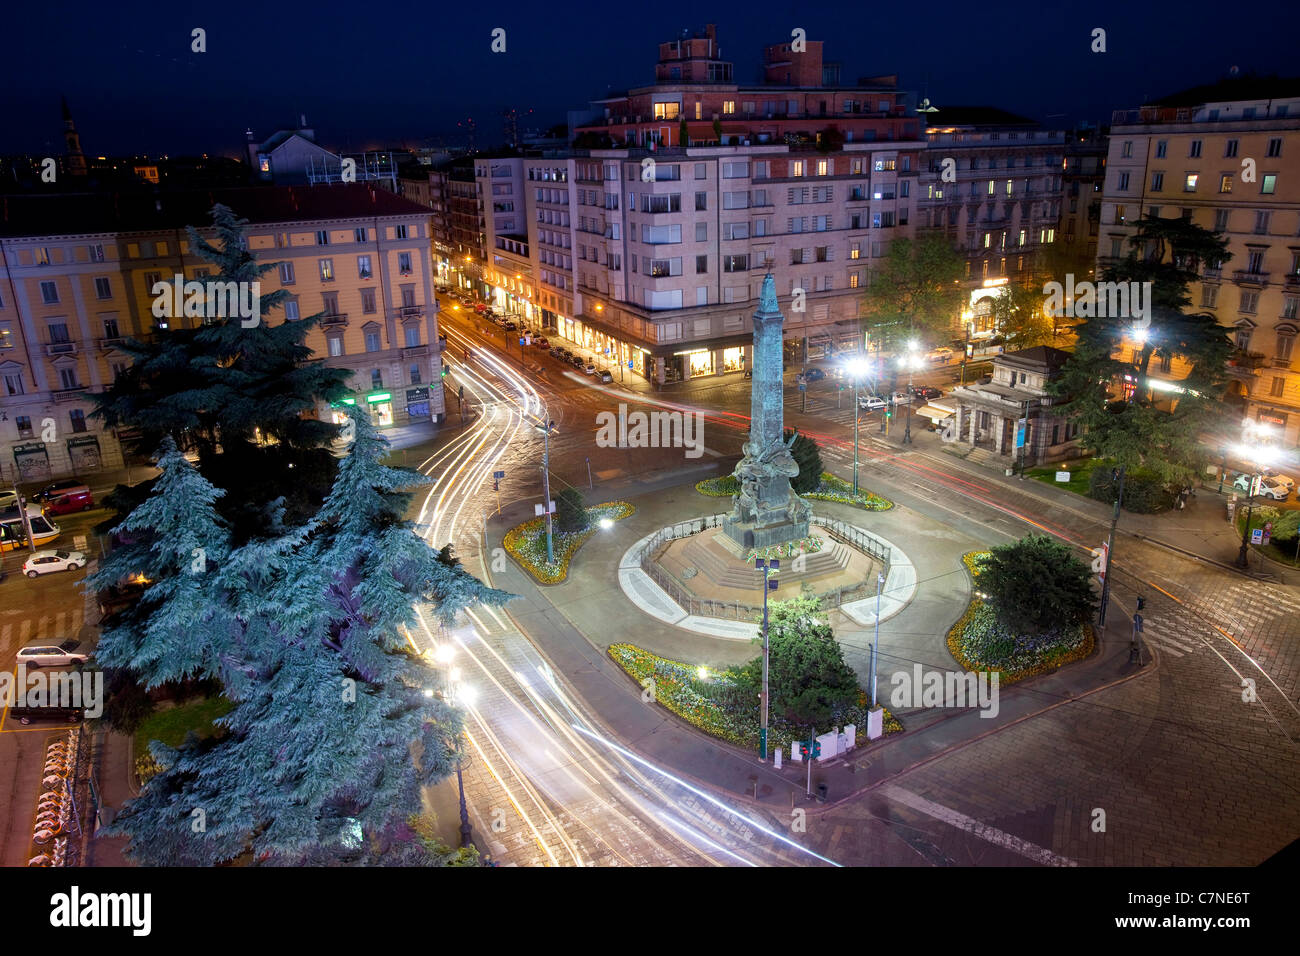 View of an Italian square at night with cars and traffic: Piazza Cinque Giornate, Milano, Milan, Italy - Stock Image